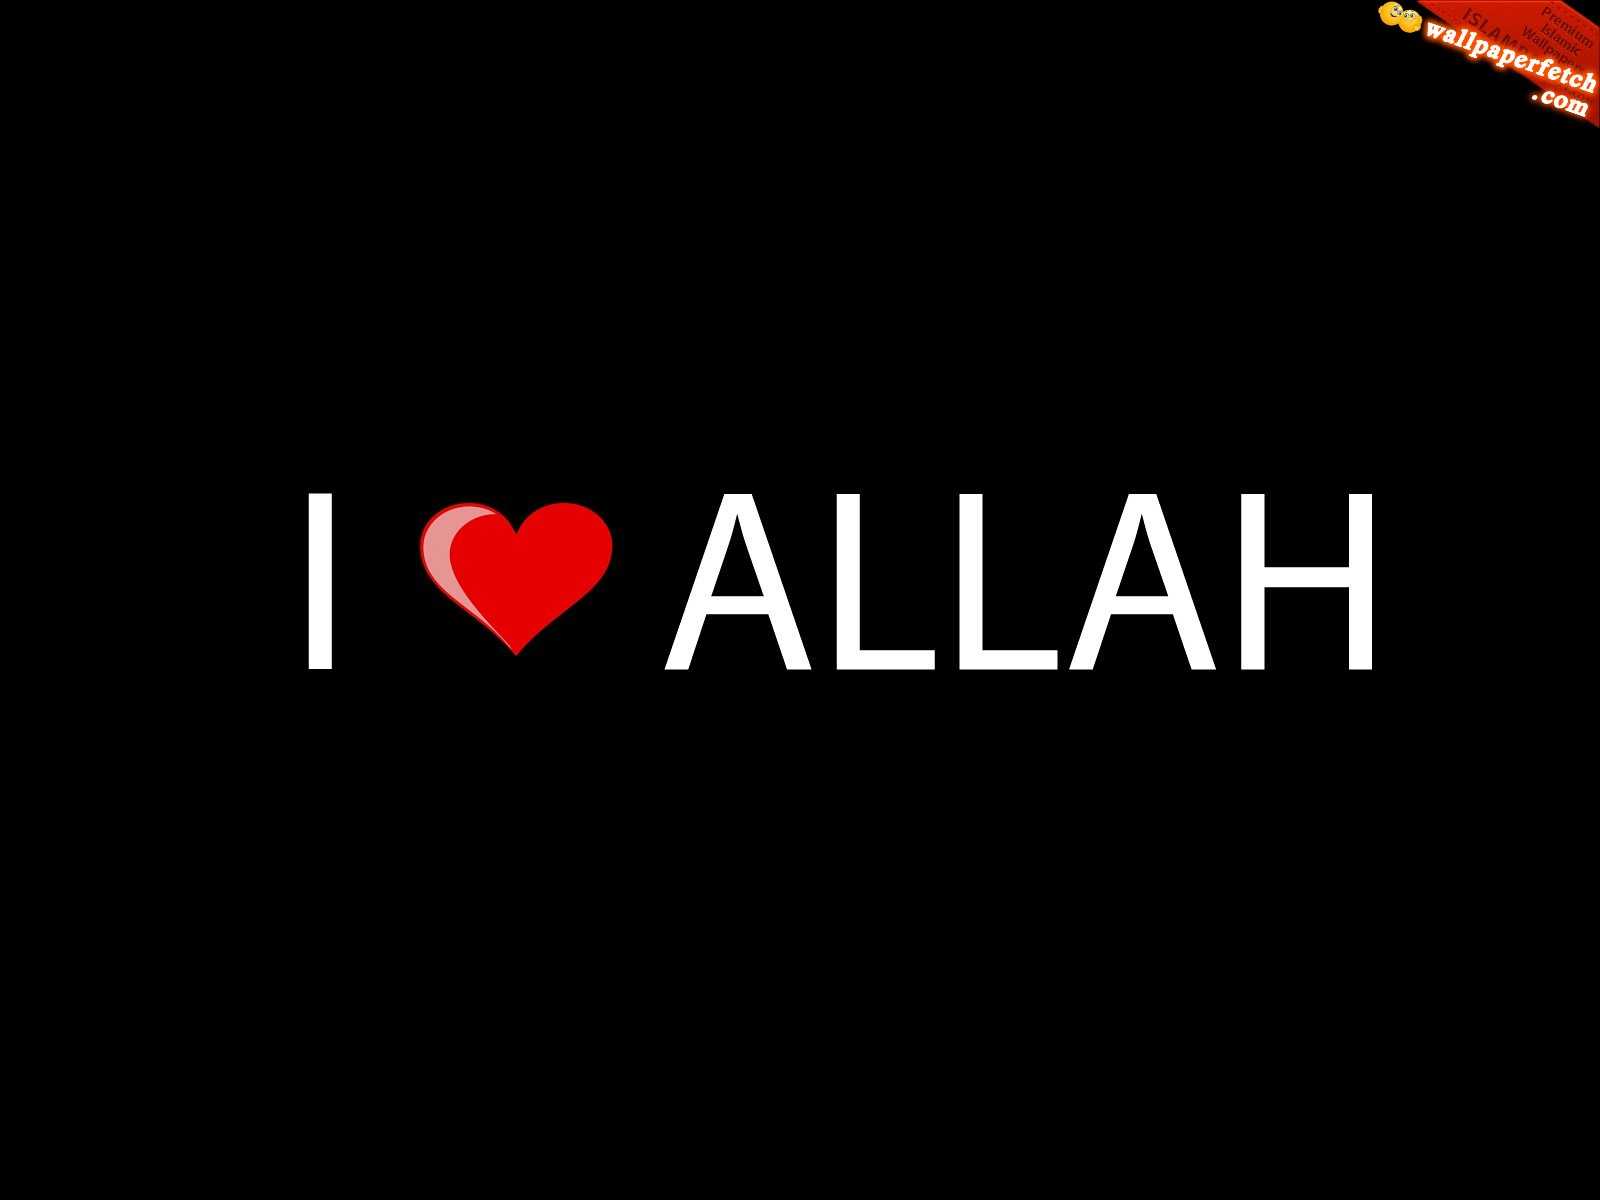 We Love Allah Wallpaper : I Love Allah And Muhammad Wallpaper Hd www.imgkid.com - The Image Kid Has It!